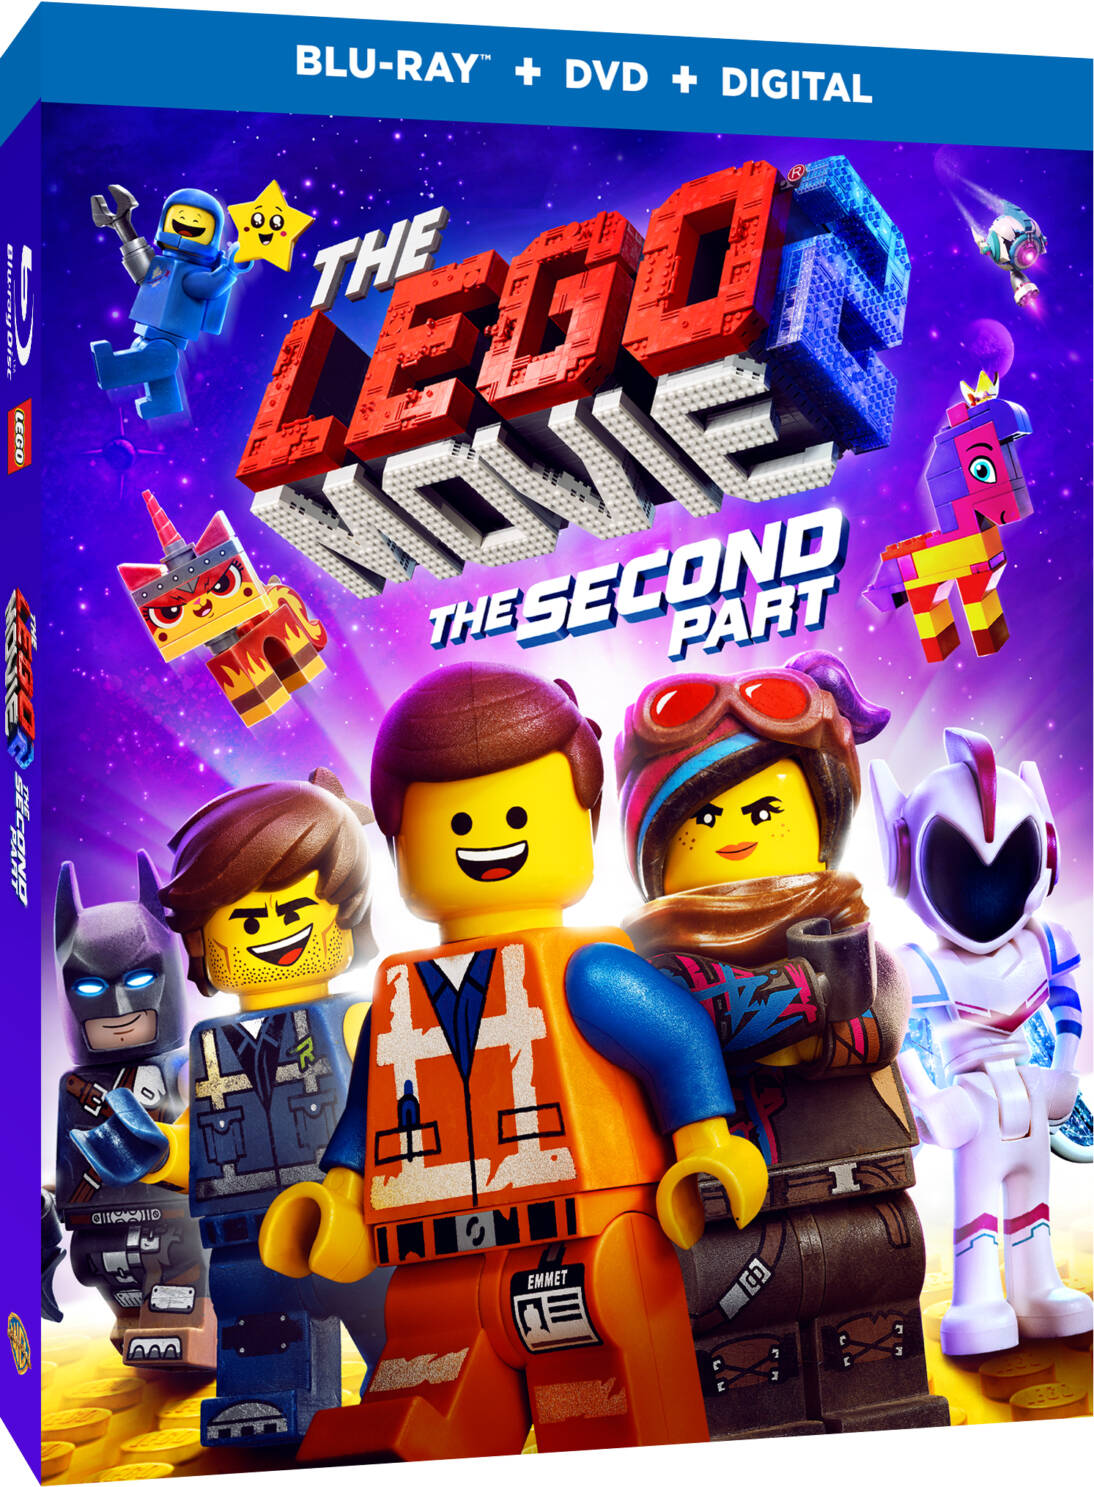 The Lego Movie 2 The Second Part On Blu Ray Dvd Digital Giveaway Outnumbered 3 To 1